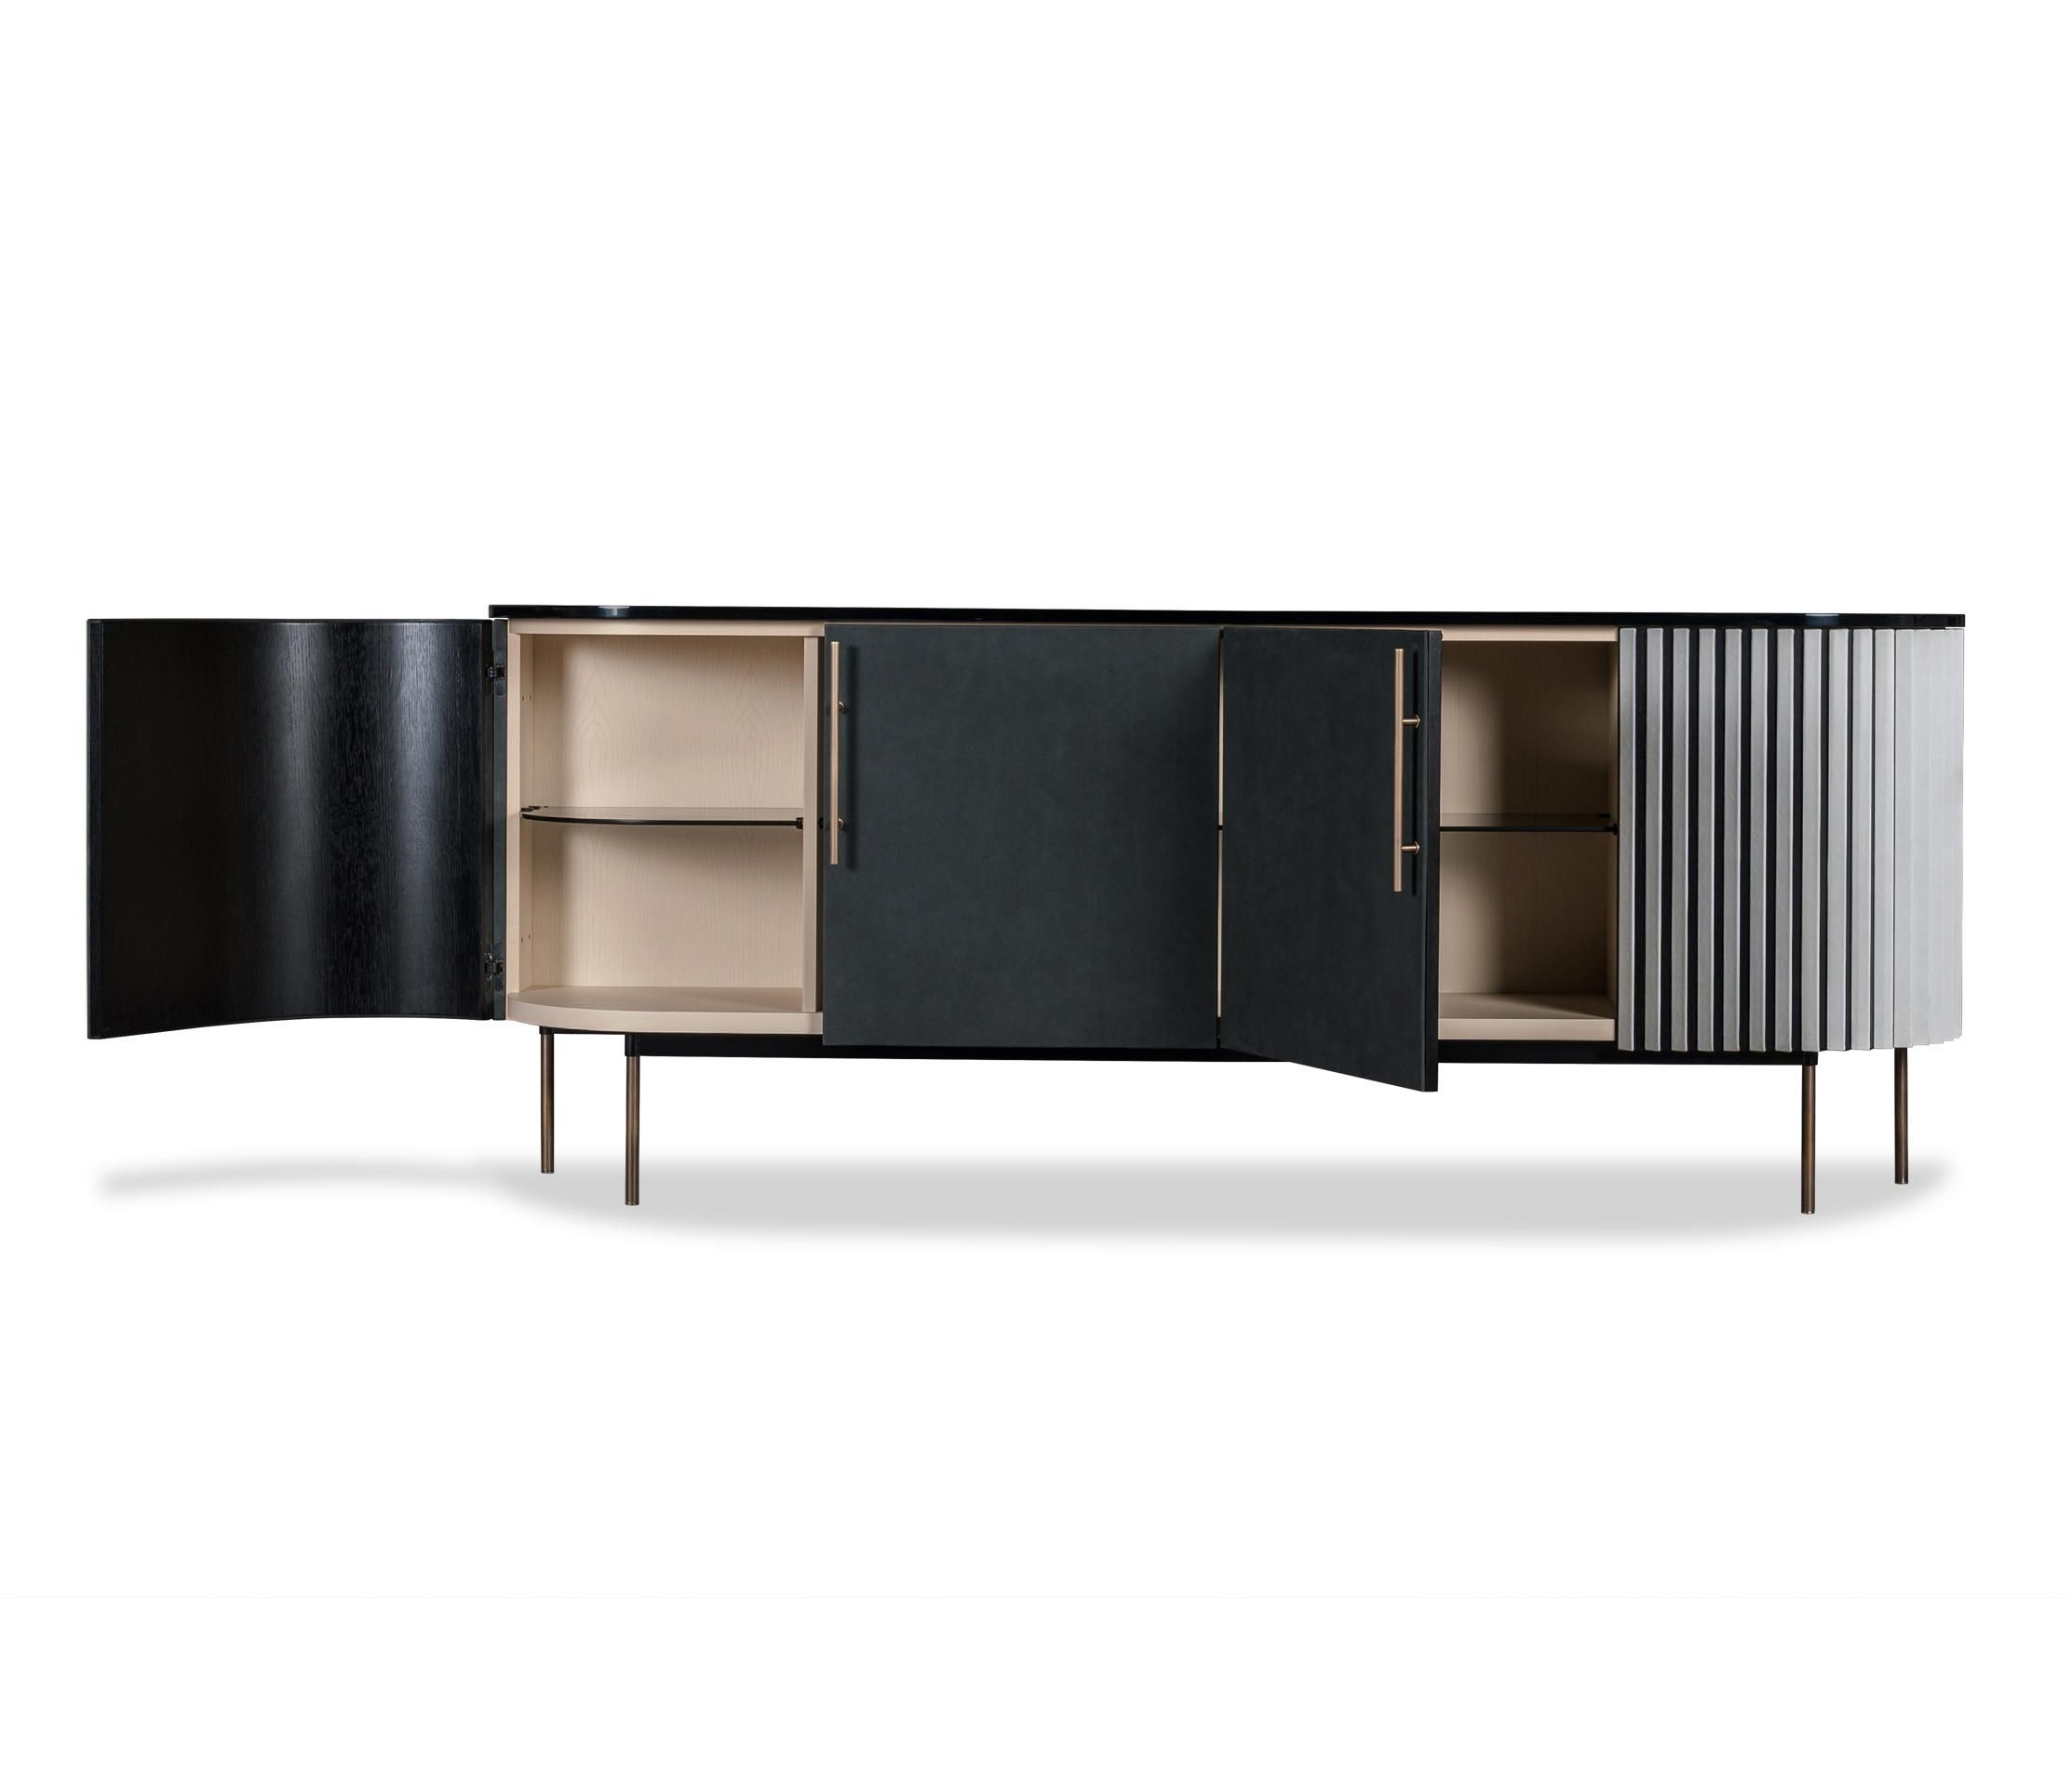 Inspiration about Plissé Low Cabinetbaxter | Sideboards | Furniture Cabinet Low Intended For Most Recent Rani 4 Door Sideboards (#11 of 20)